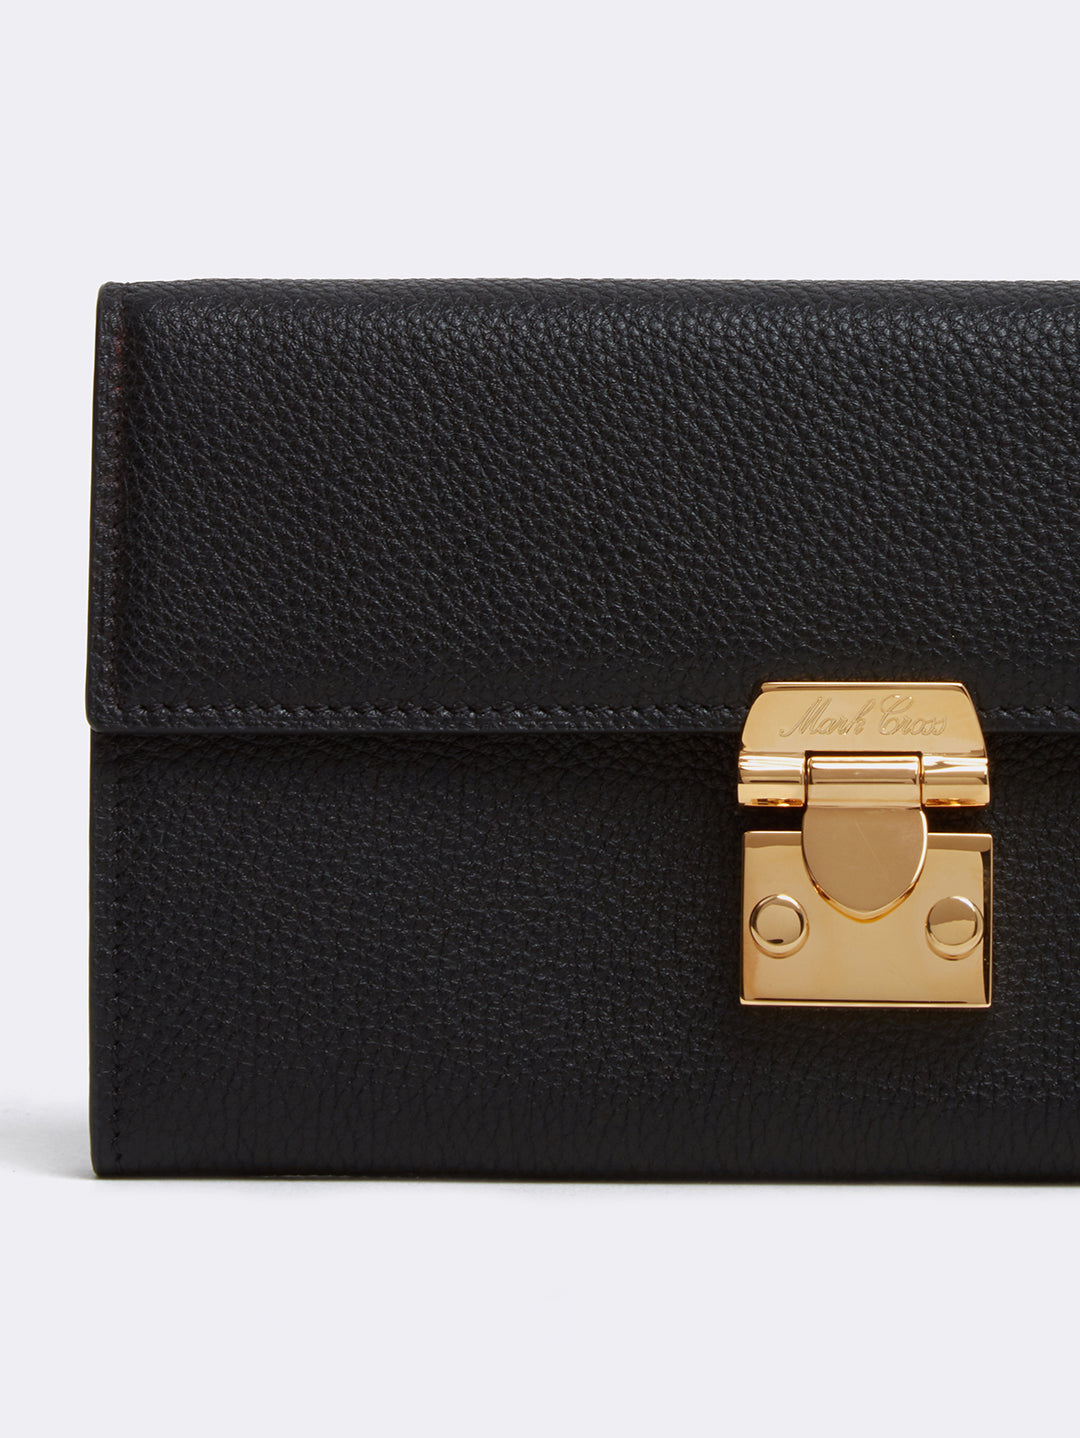 Mark Cross Hadley Leather Flap Wallet Tumbled Grain Black Detail